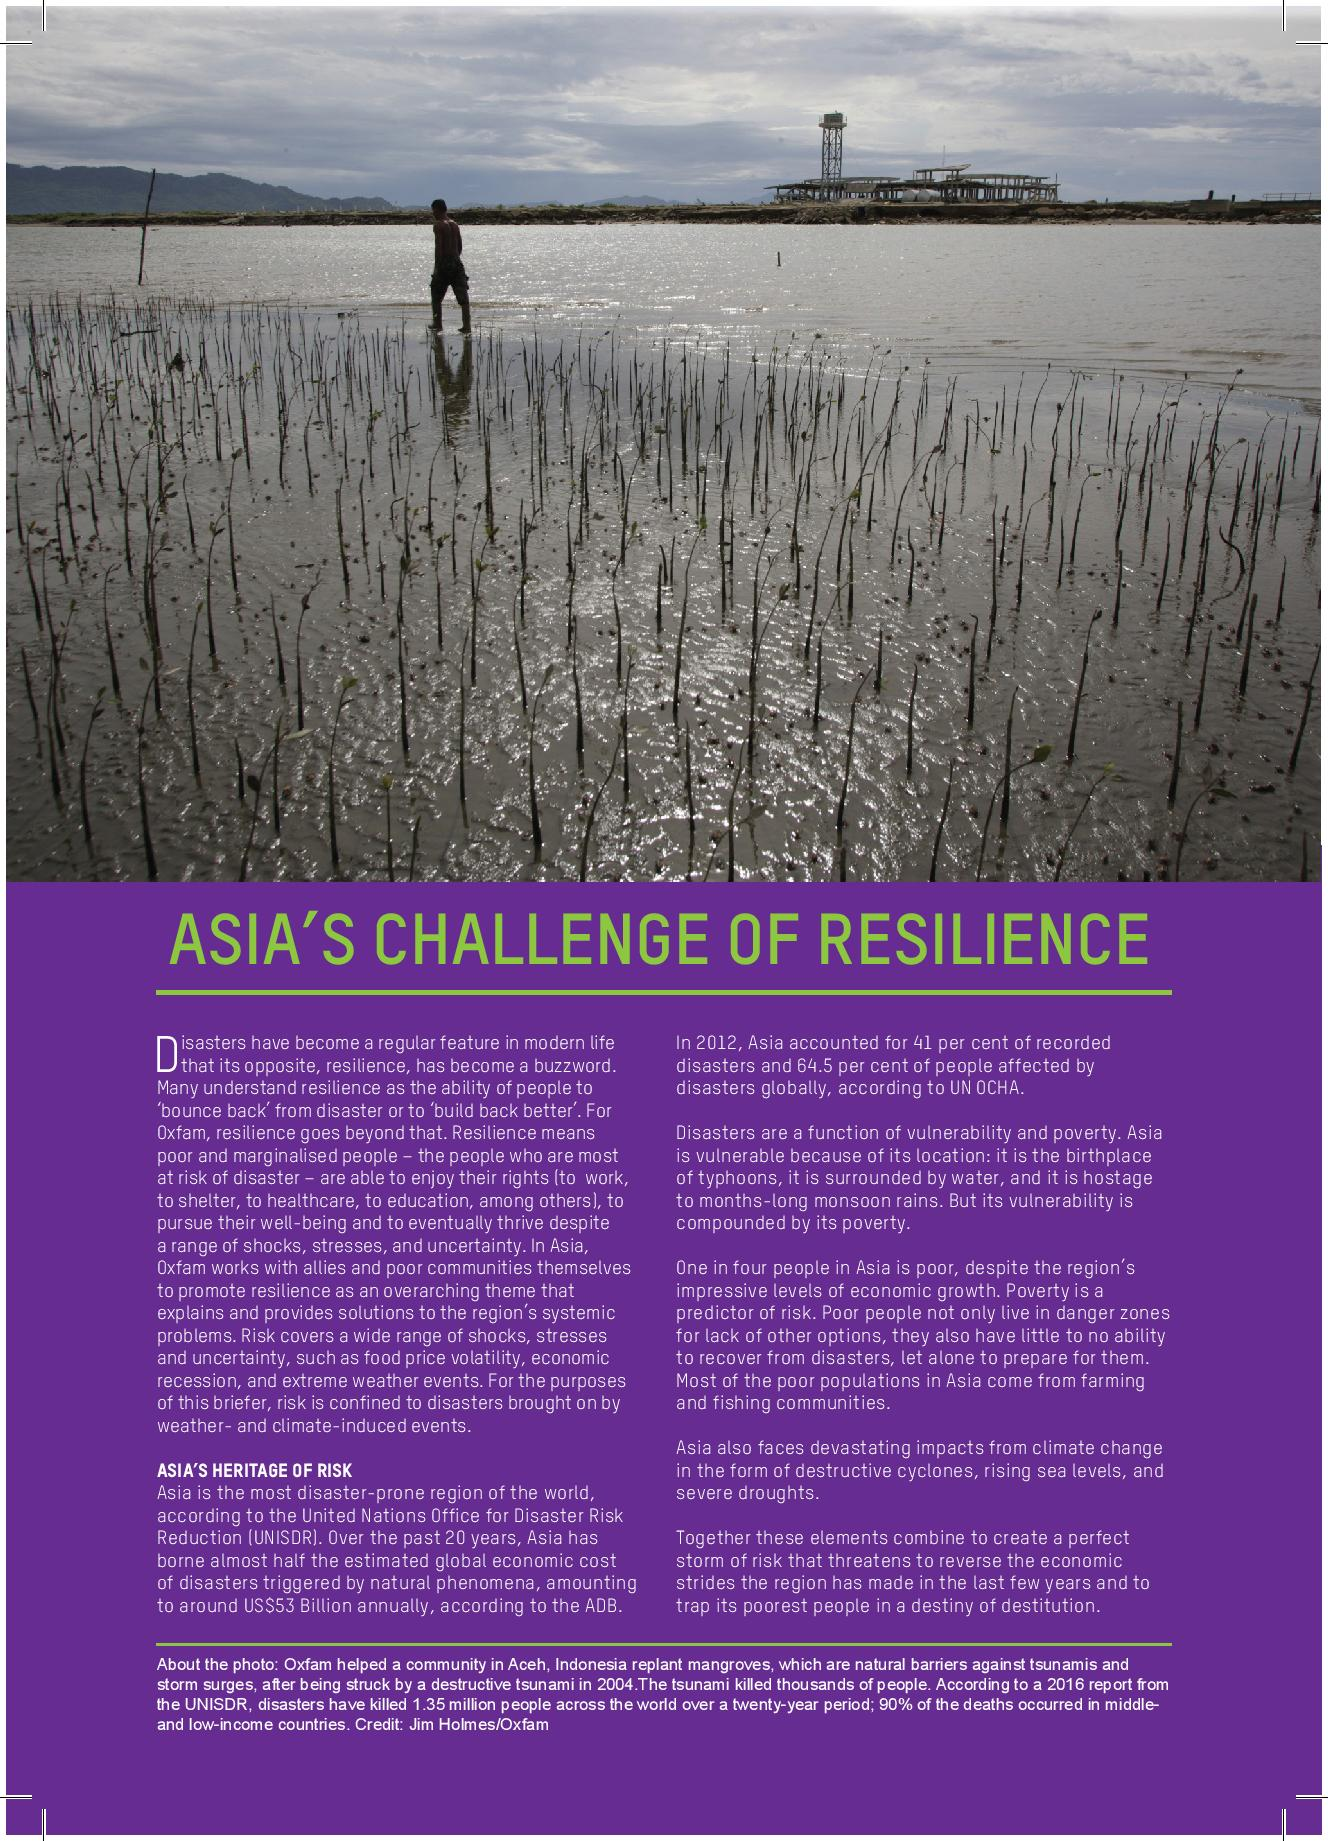 Oxfam briefer - Disaster risk reduction, resilience